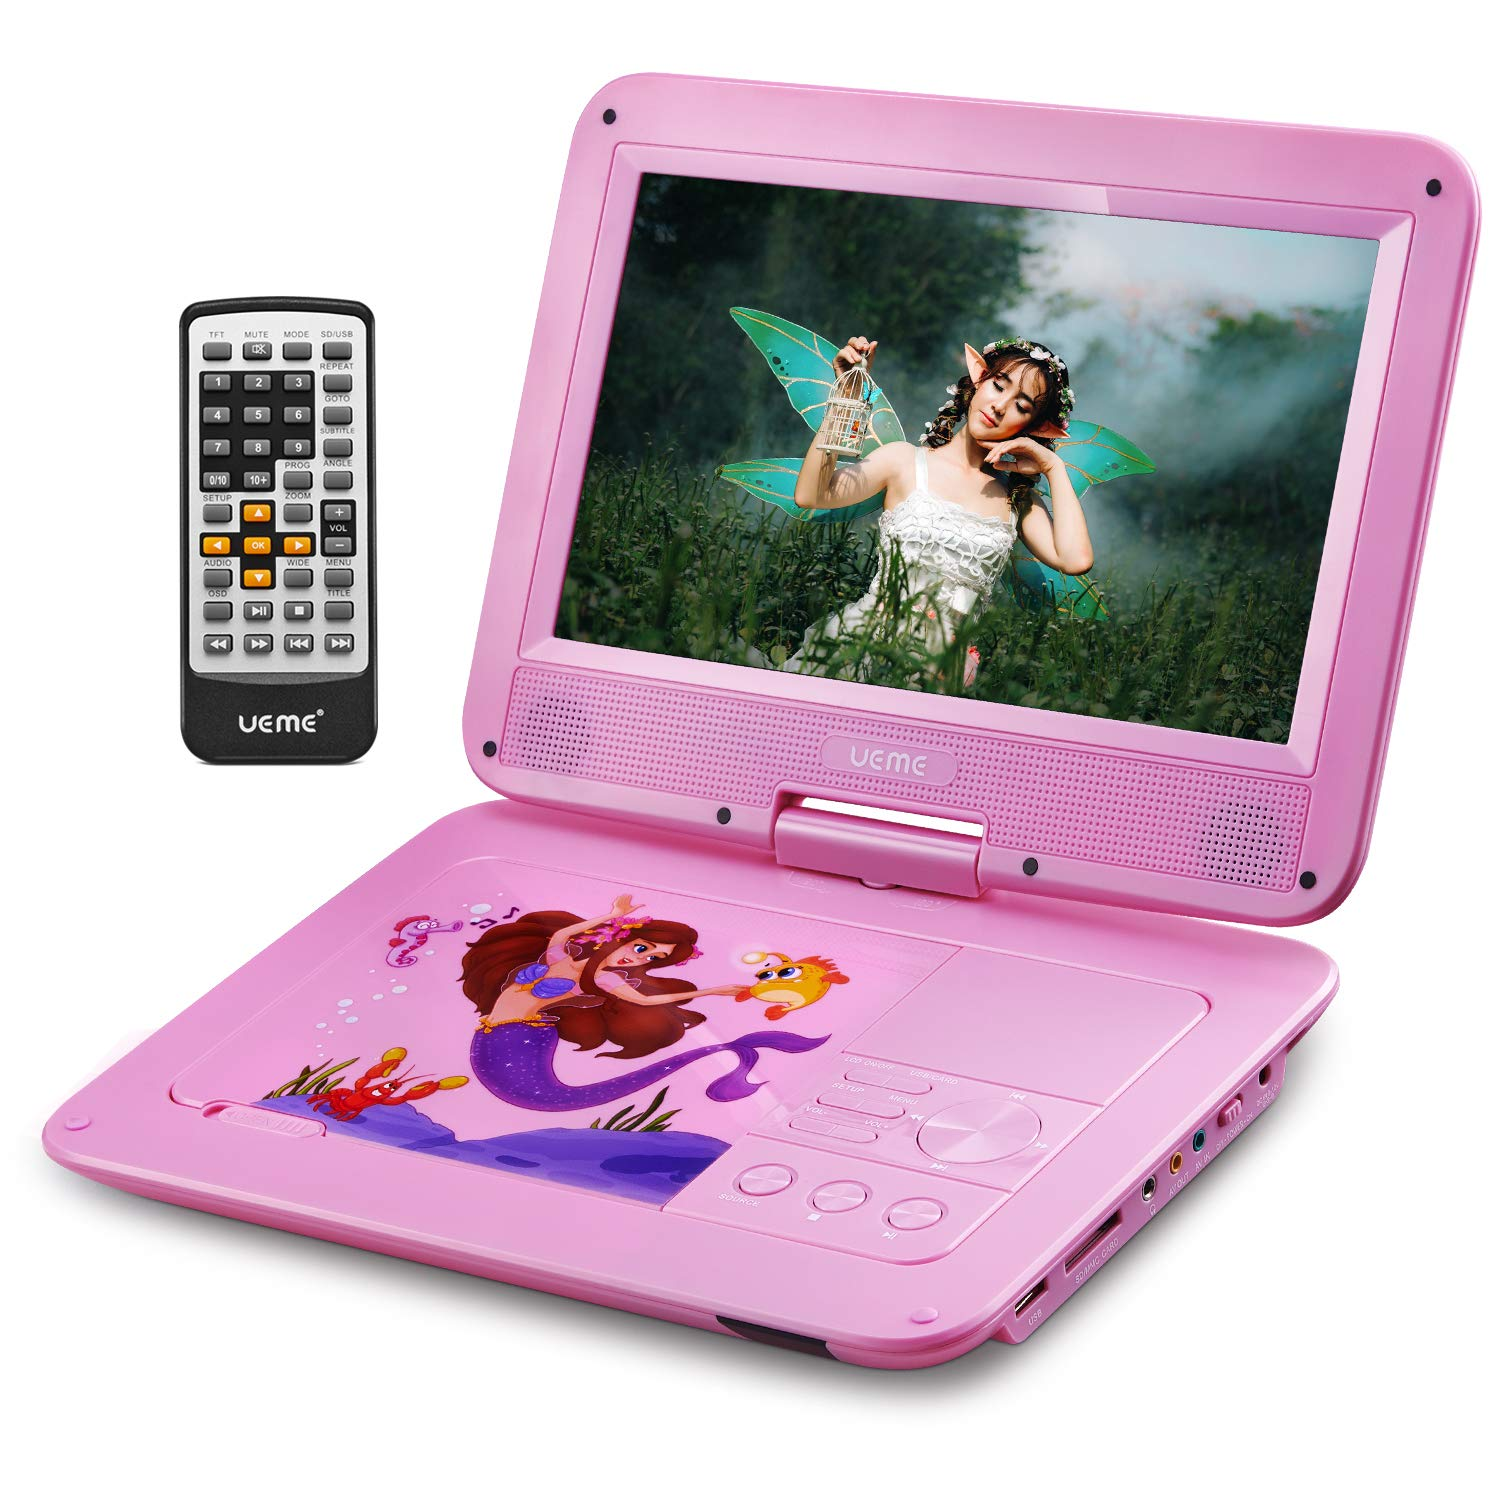 UEME Portable DVD CD Player with 10.1 Inches Screen, Car Headrest Holder, Remote Control, Rechargeable Battery, Car Charger, Wall Charger, Personal DVD Players PD-1010 (Pink)